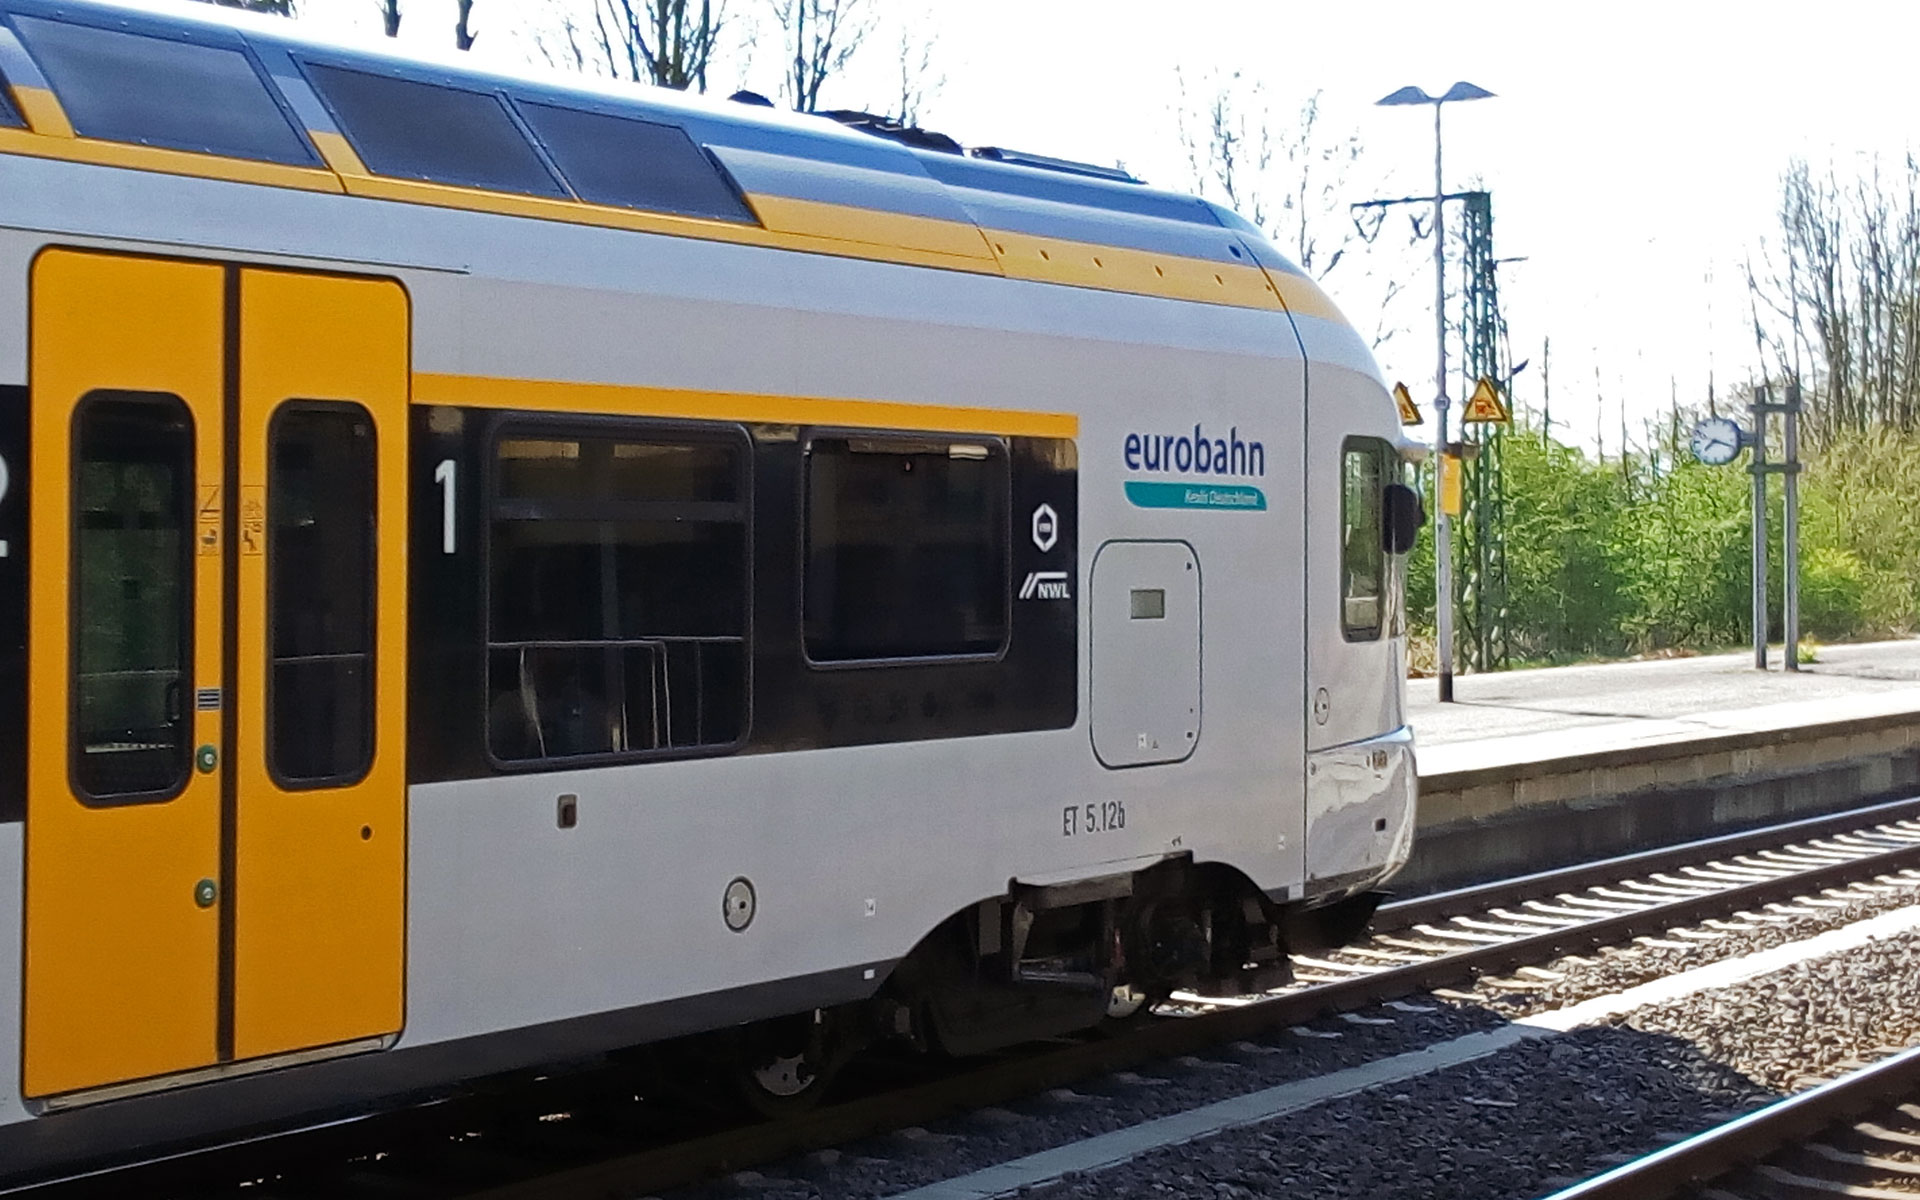 Regional train operator Eurobahn, part of the Keolis group, offers hourly services across the German-Dutch border to Venlo (photo © hidden europe).